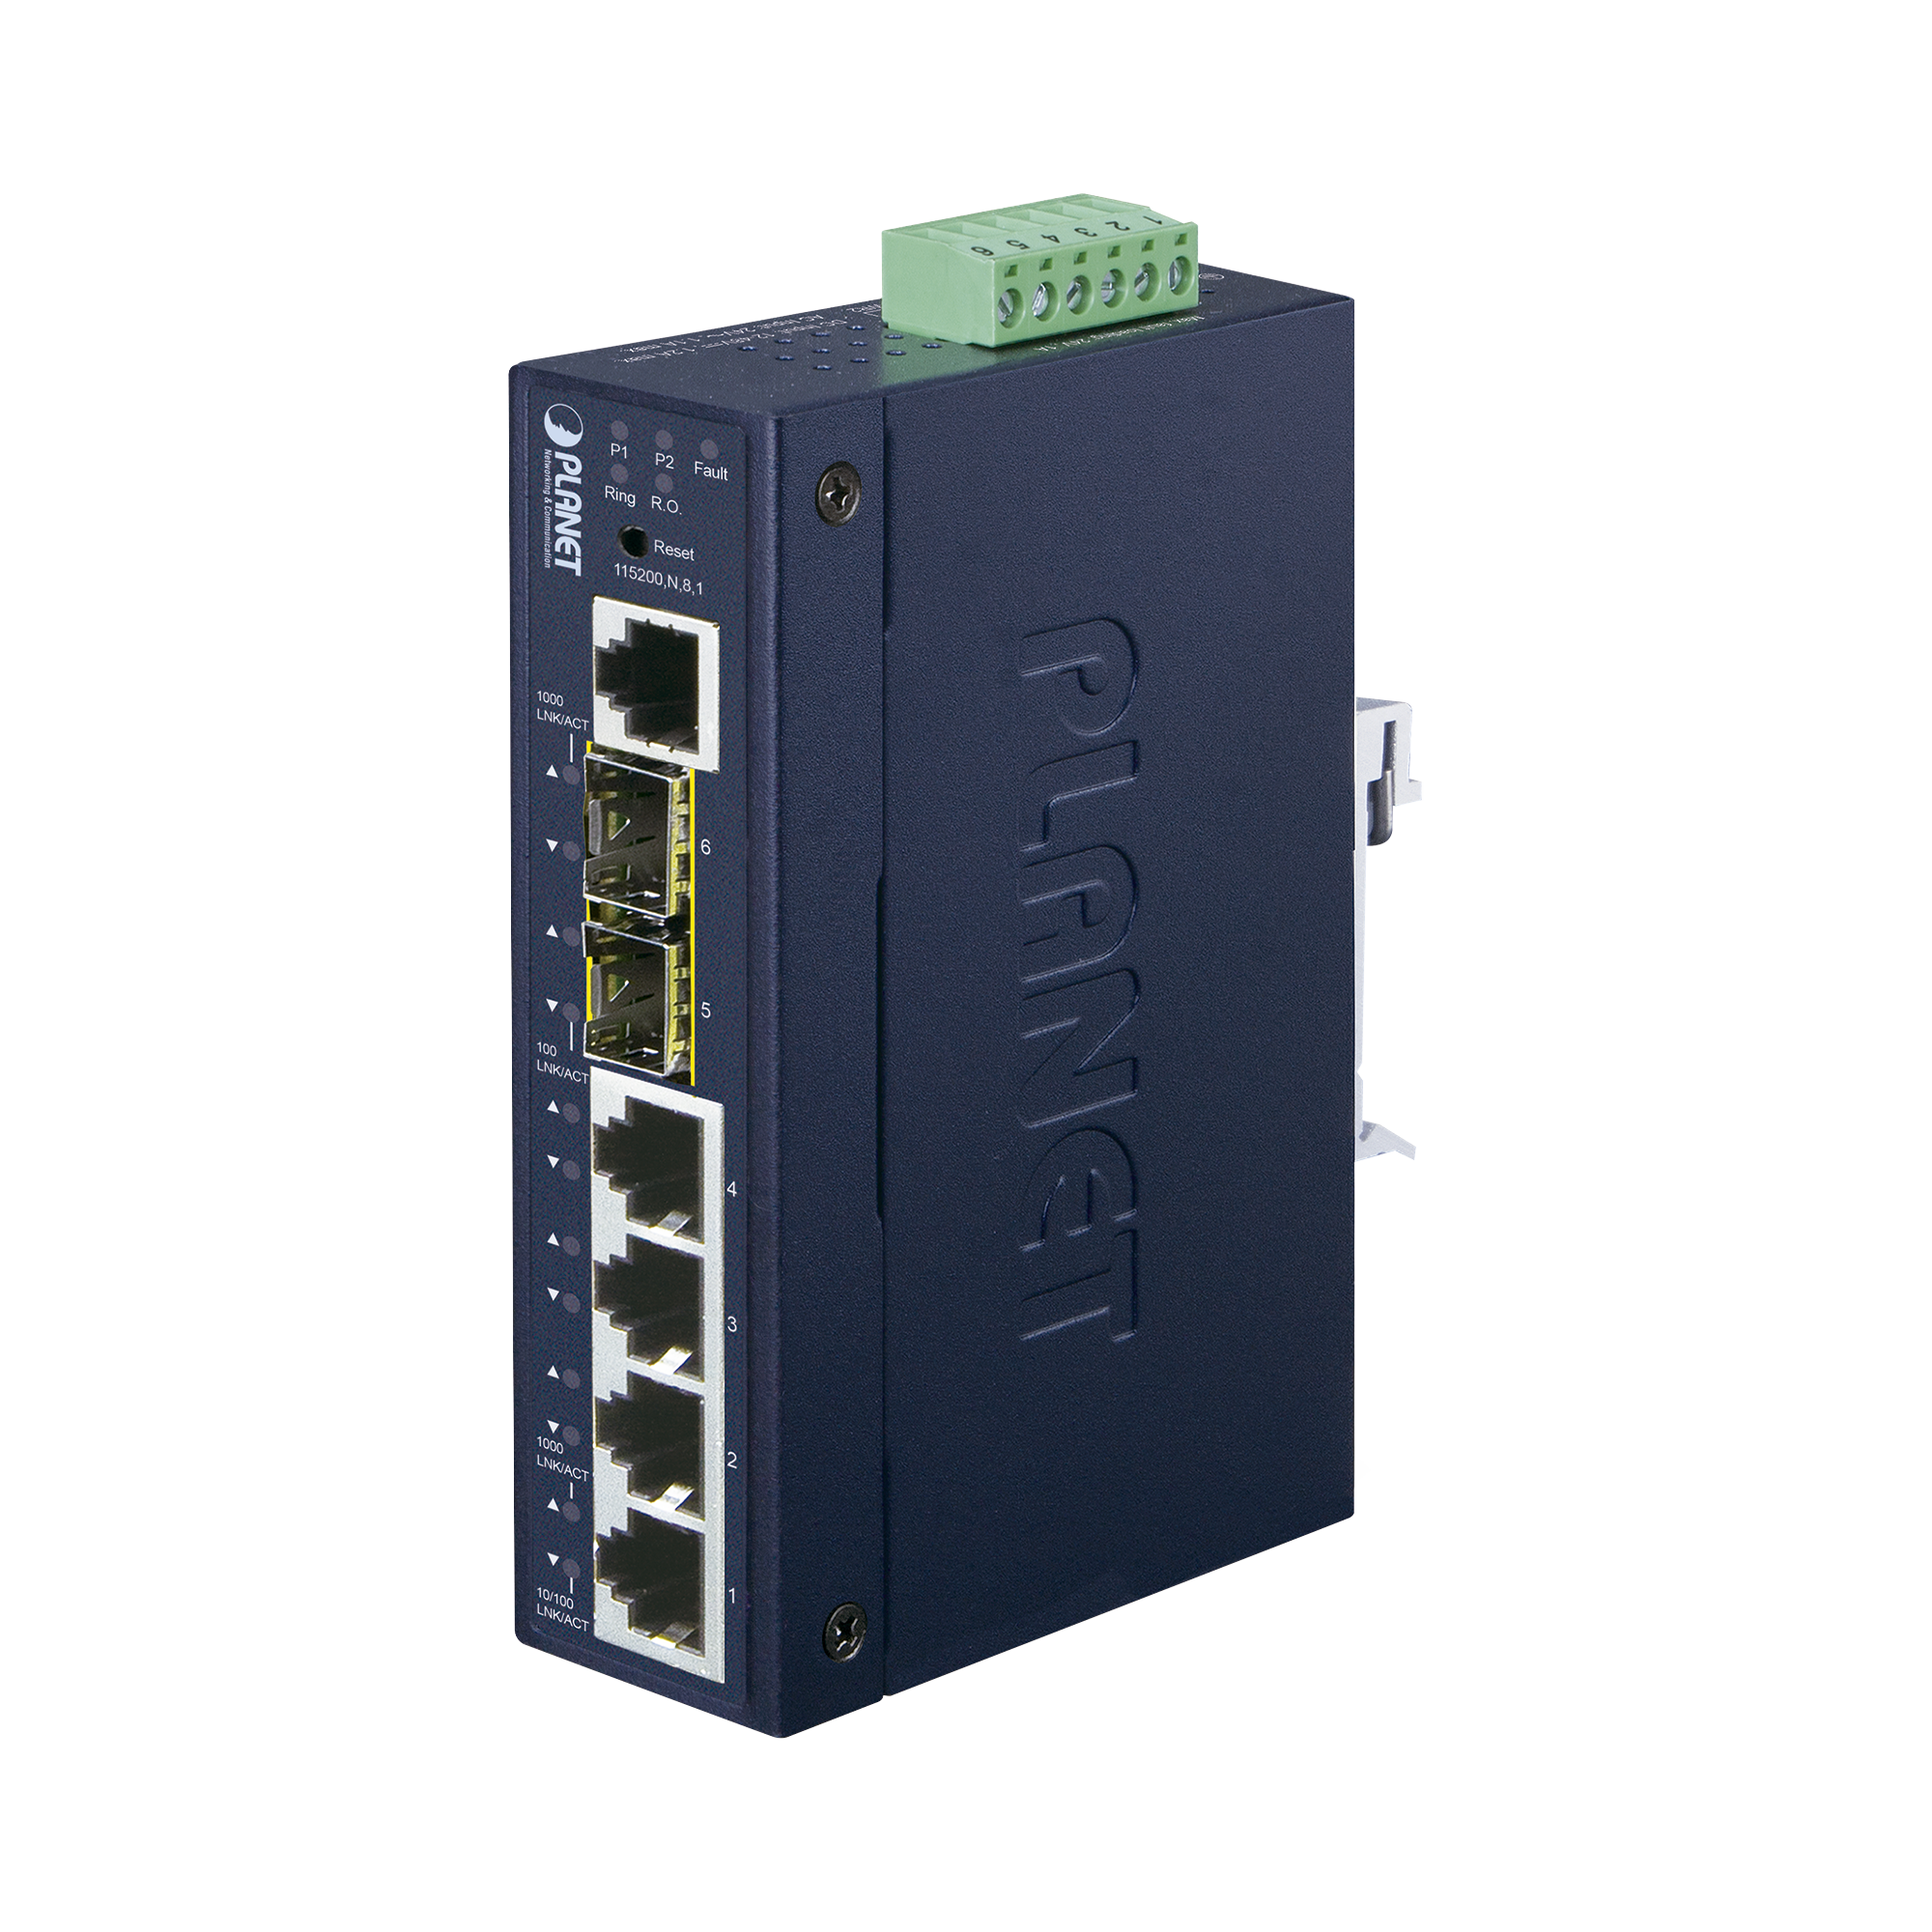 Switch Administrable industrial L2+ de 4 puertos 10/100/1000T + 2 puertos SFP 100/1000X